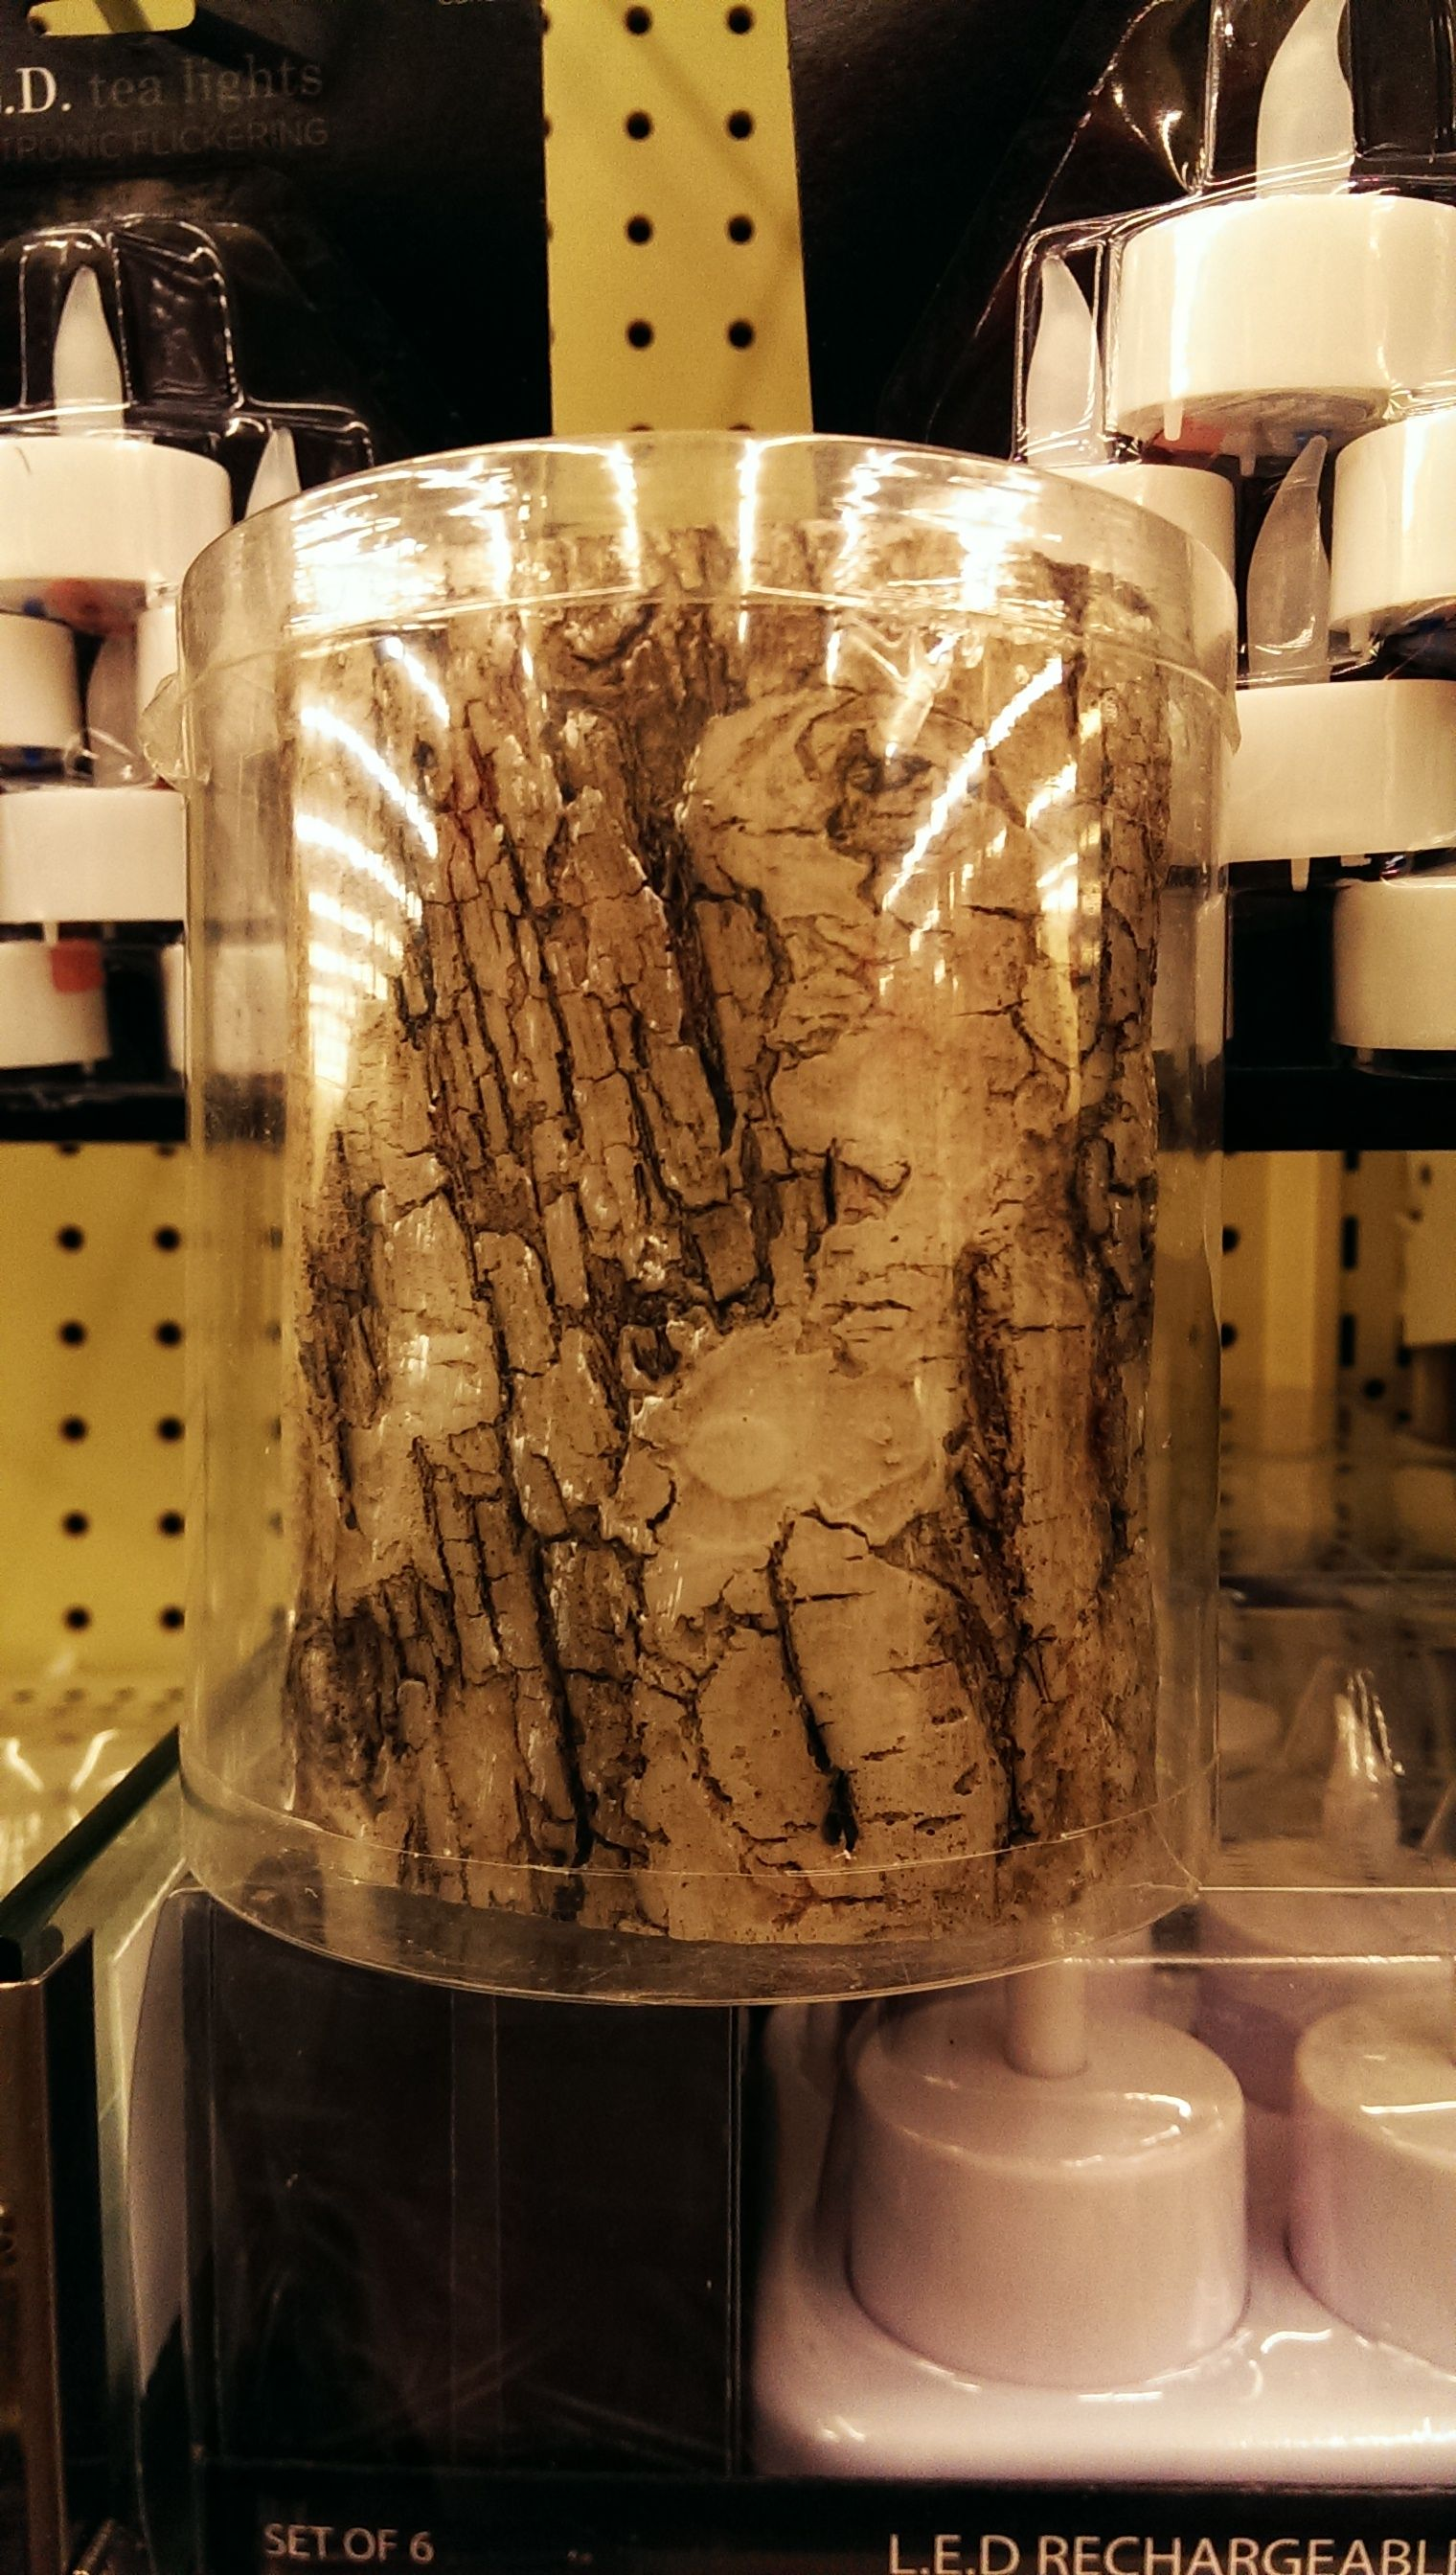 We'll use these birch bark LED candles in the lanterns